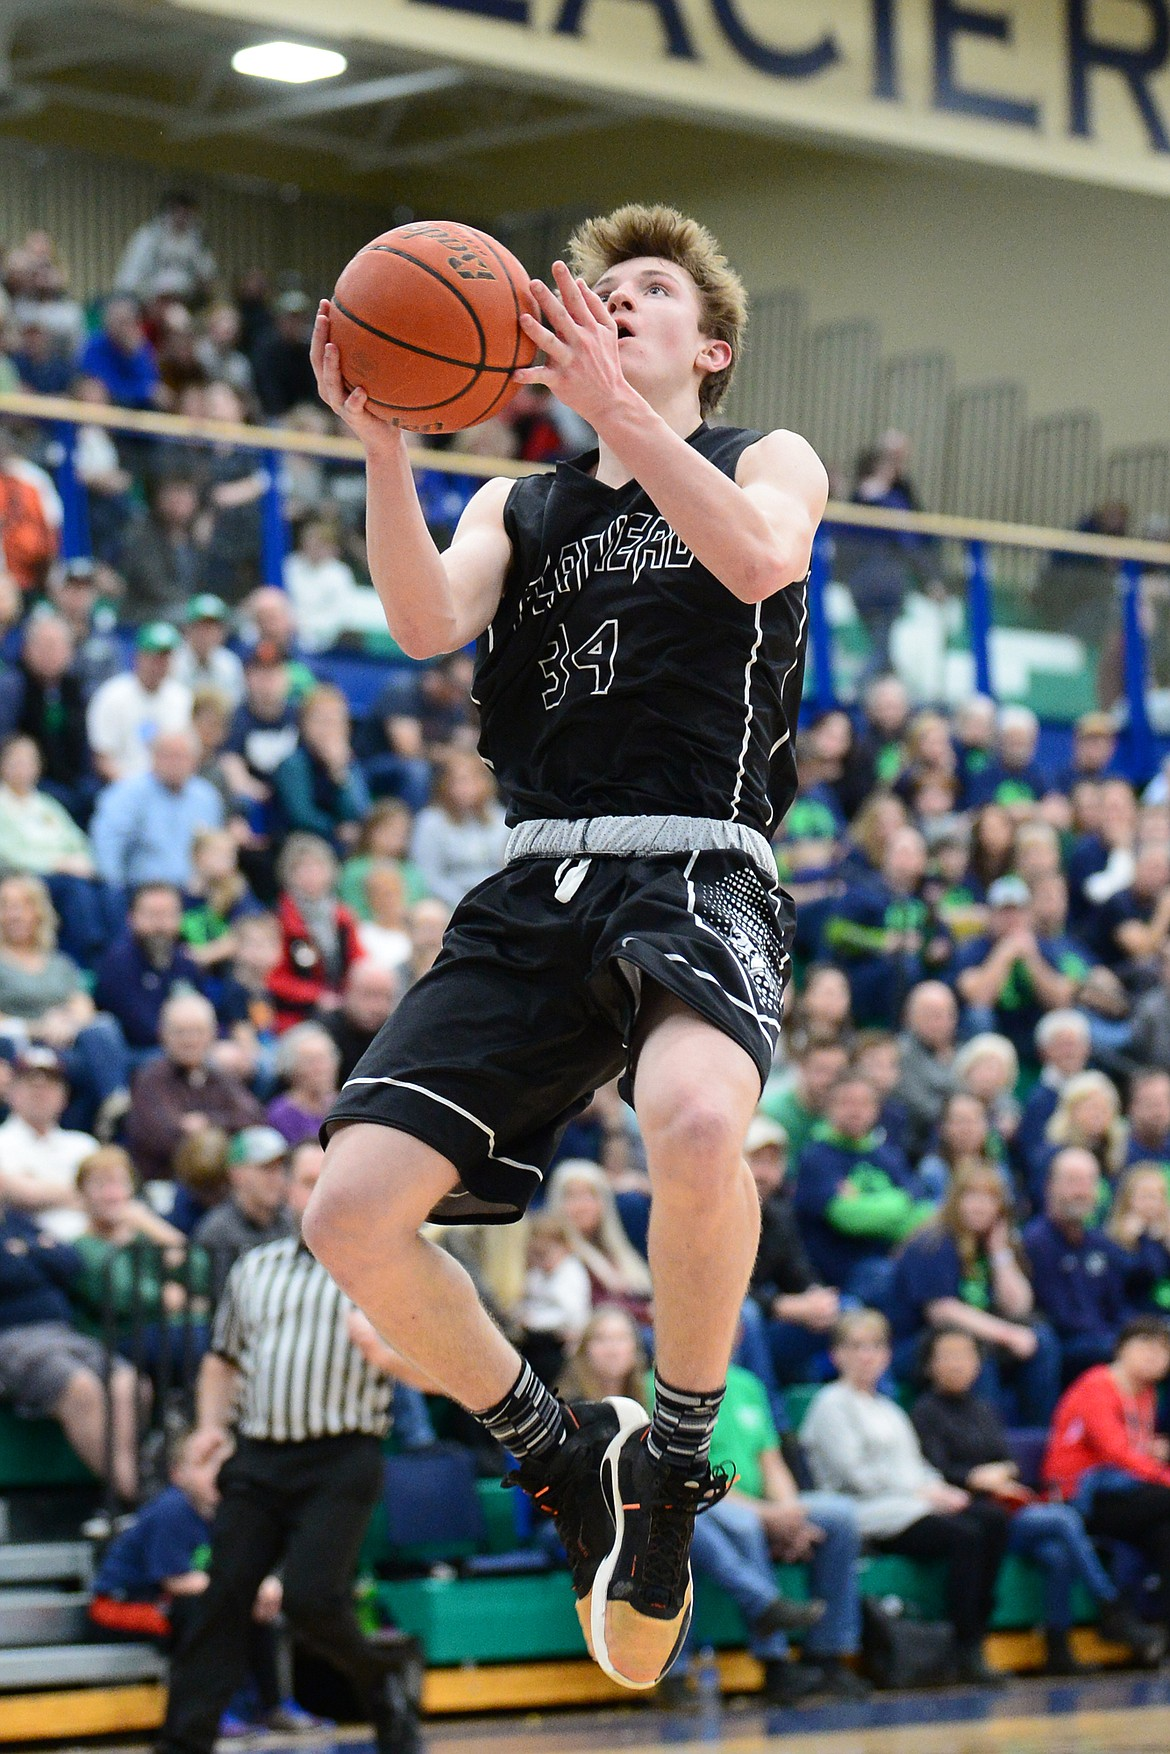 Flathead's Joston Cripe (34) goes to the hoop against Glacier during a crosstown matchup at Glacier High School on Friday. (Casey Kreider/Daily Inter Lake)